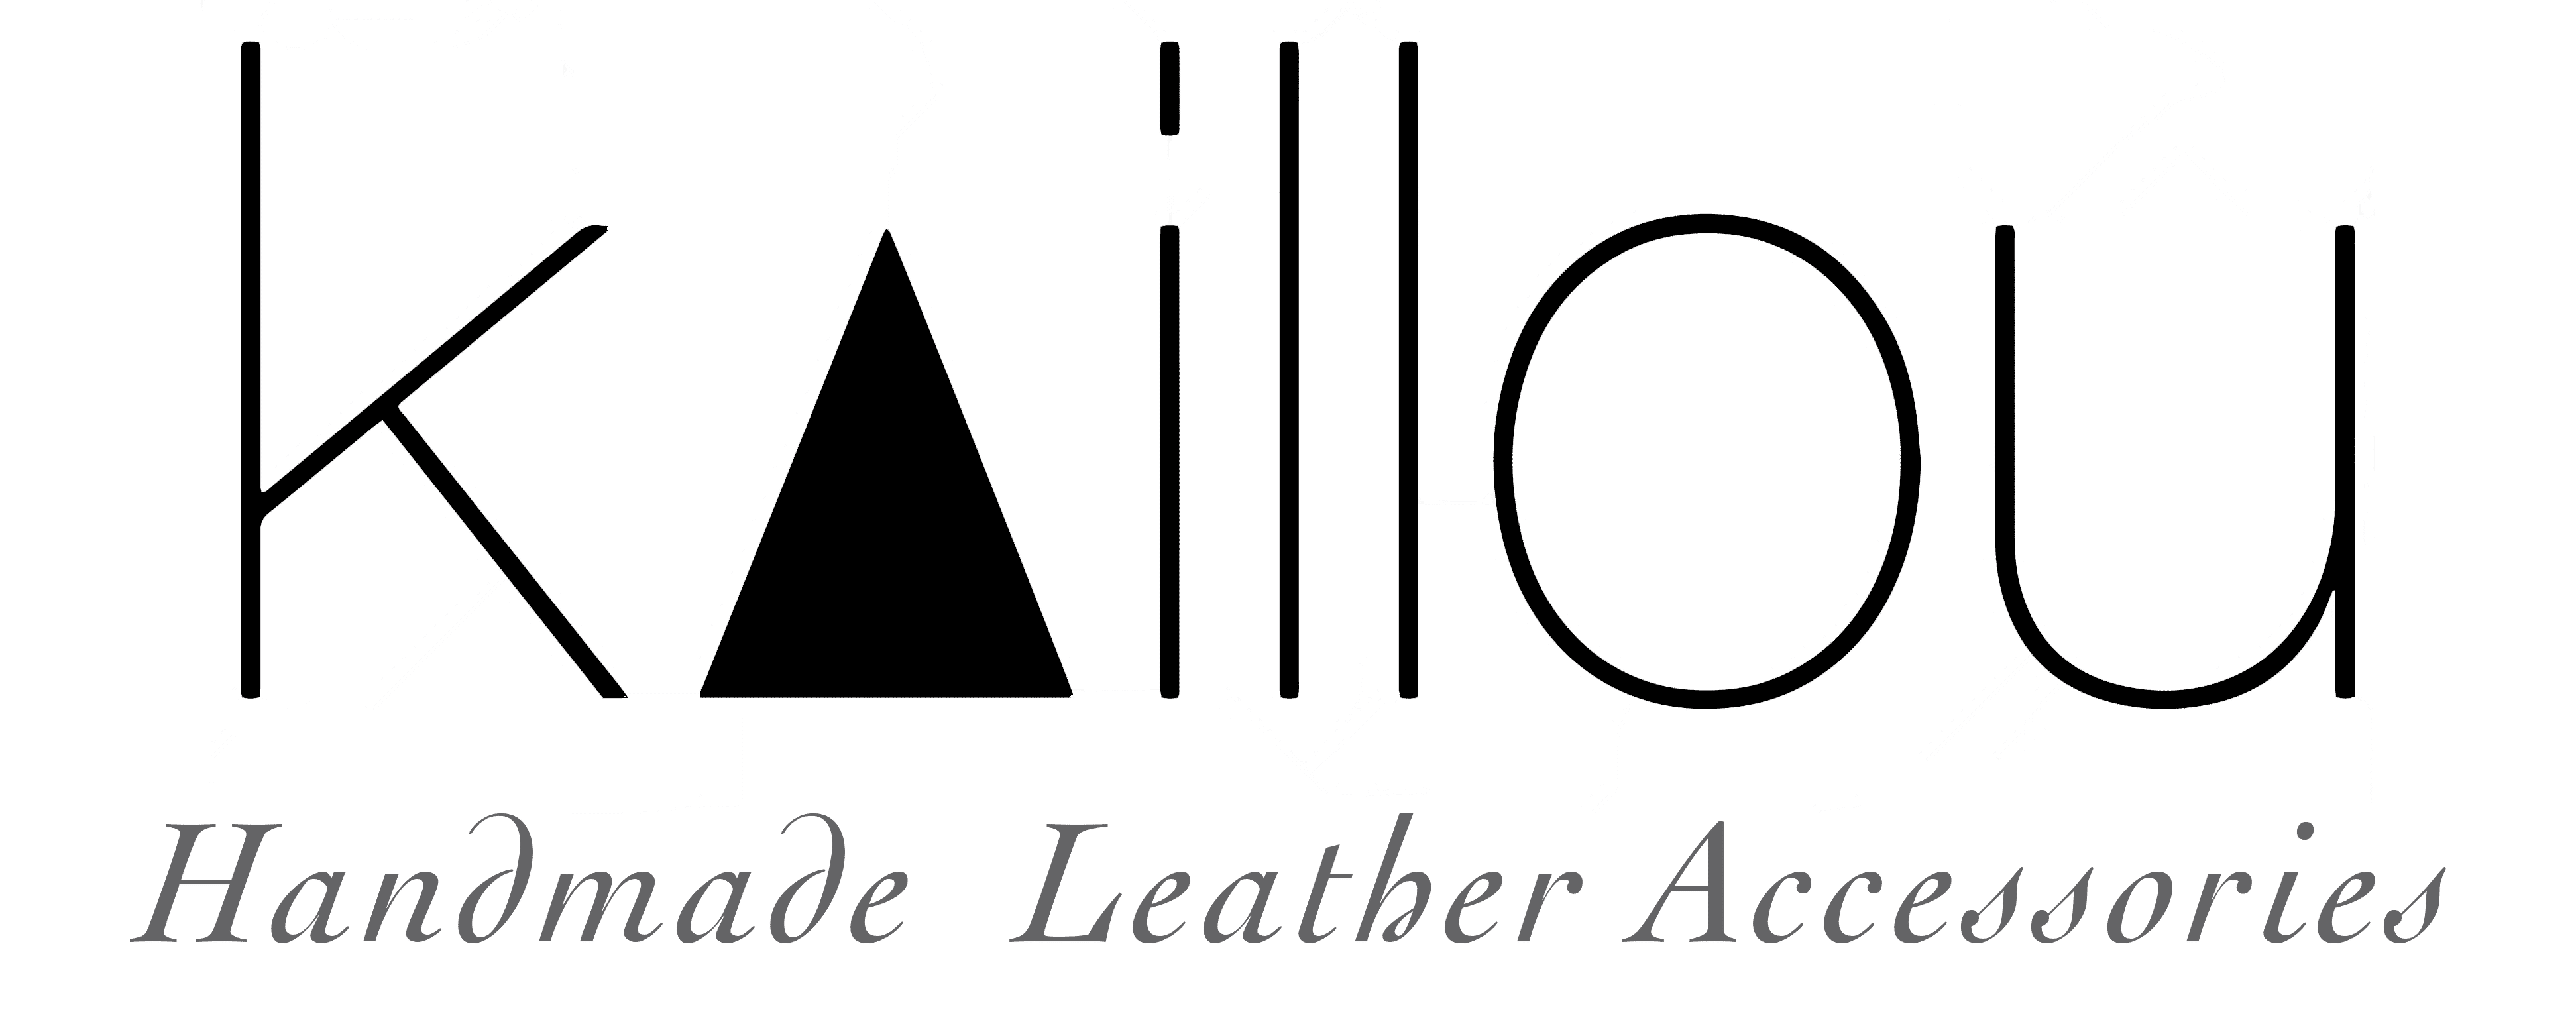 Kaillou – Handmade Leather Accessories